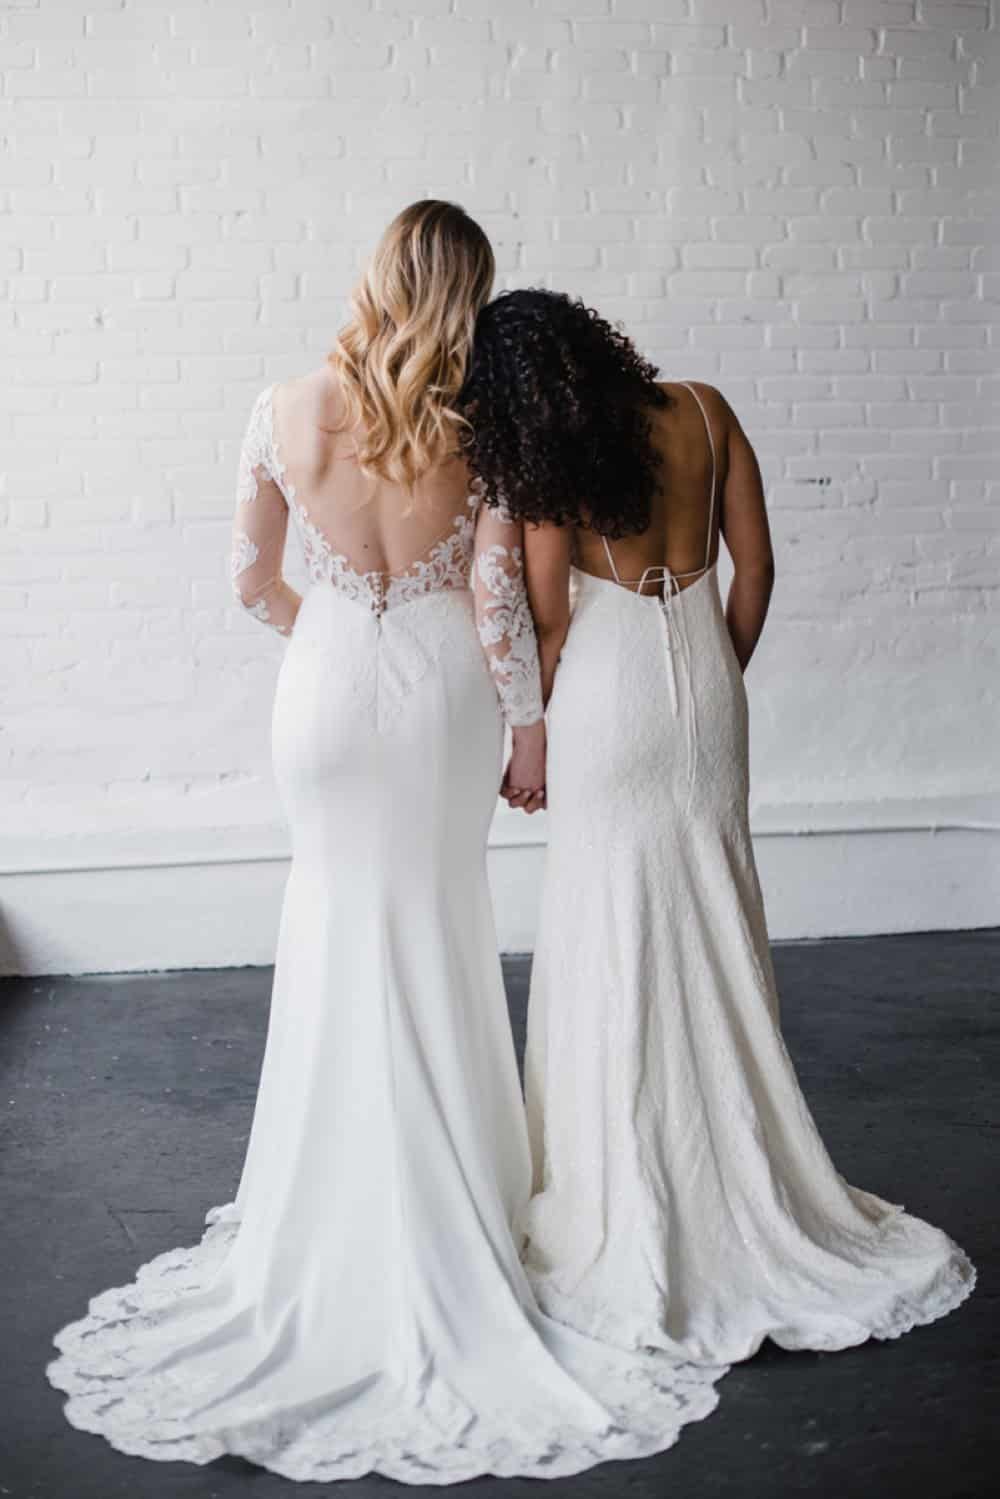 Lyra Veda Bridal Trunk Show, wedding dresses